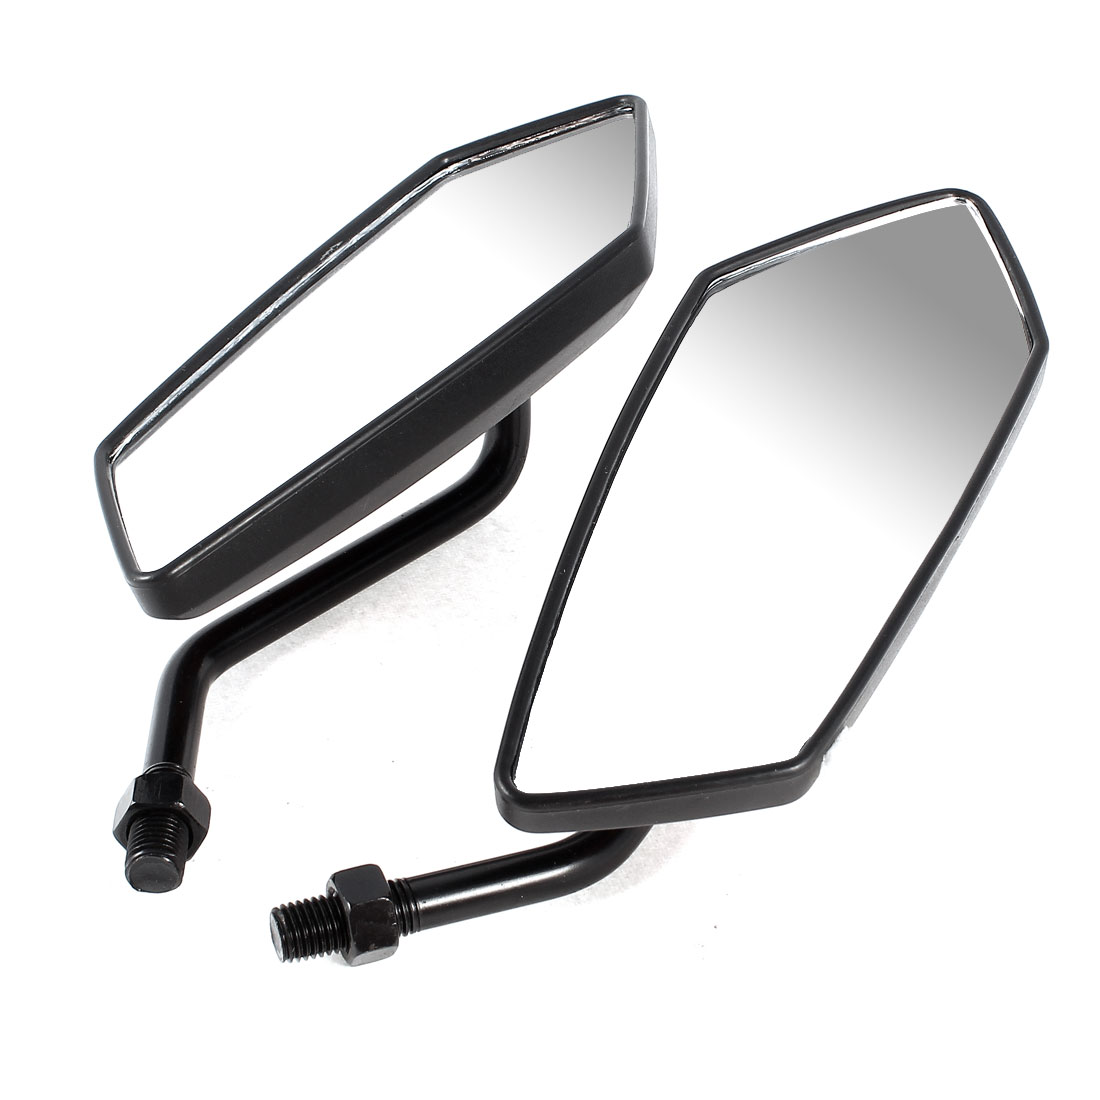 2 Pcs Black Red Gecko Pattern Motorcycle Blind Spot Rear View Mirror